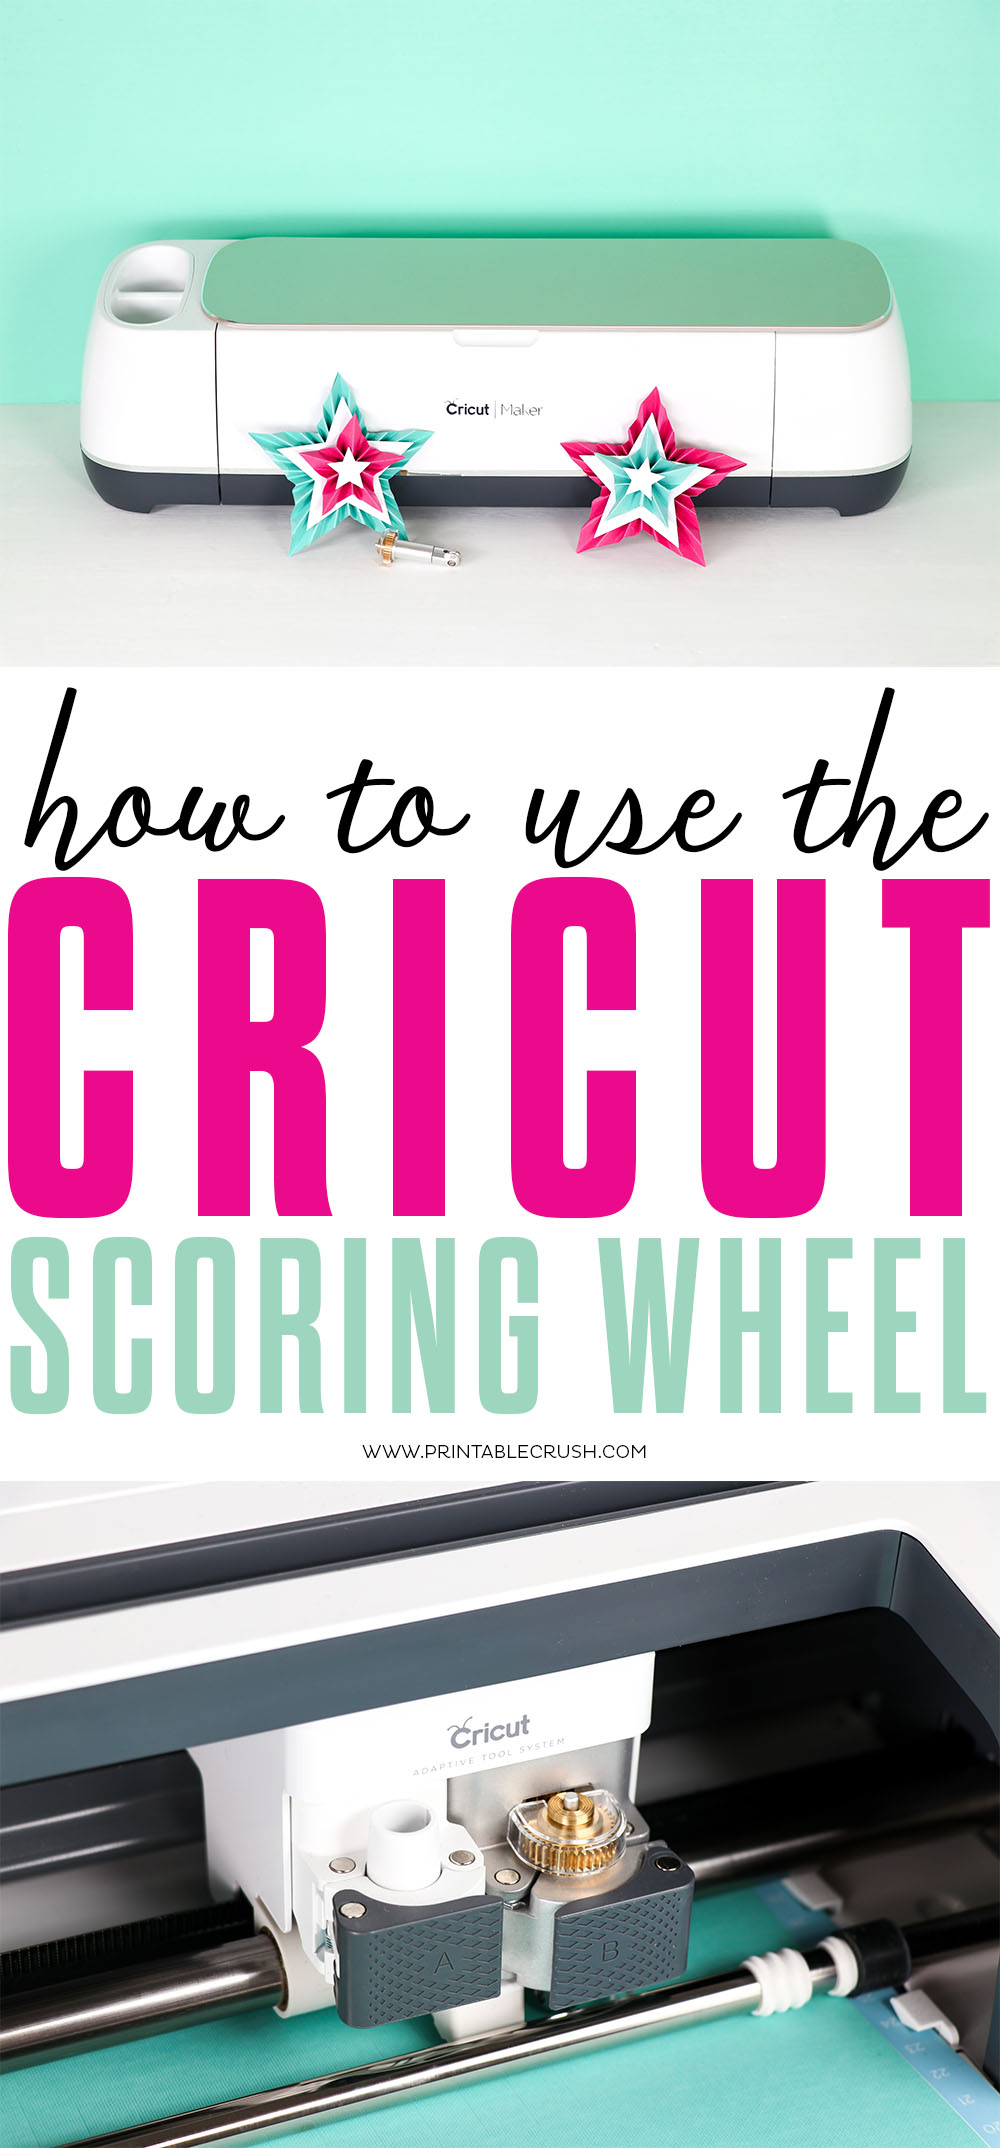 Learn how to use the Cricut Scoring Wheel on the Cricut Maker! Probably the easiest Cricut tutorial ever!